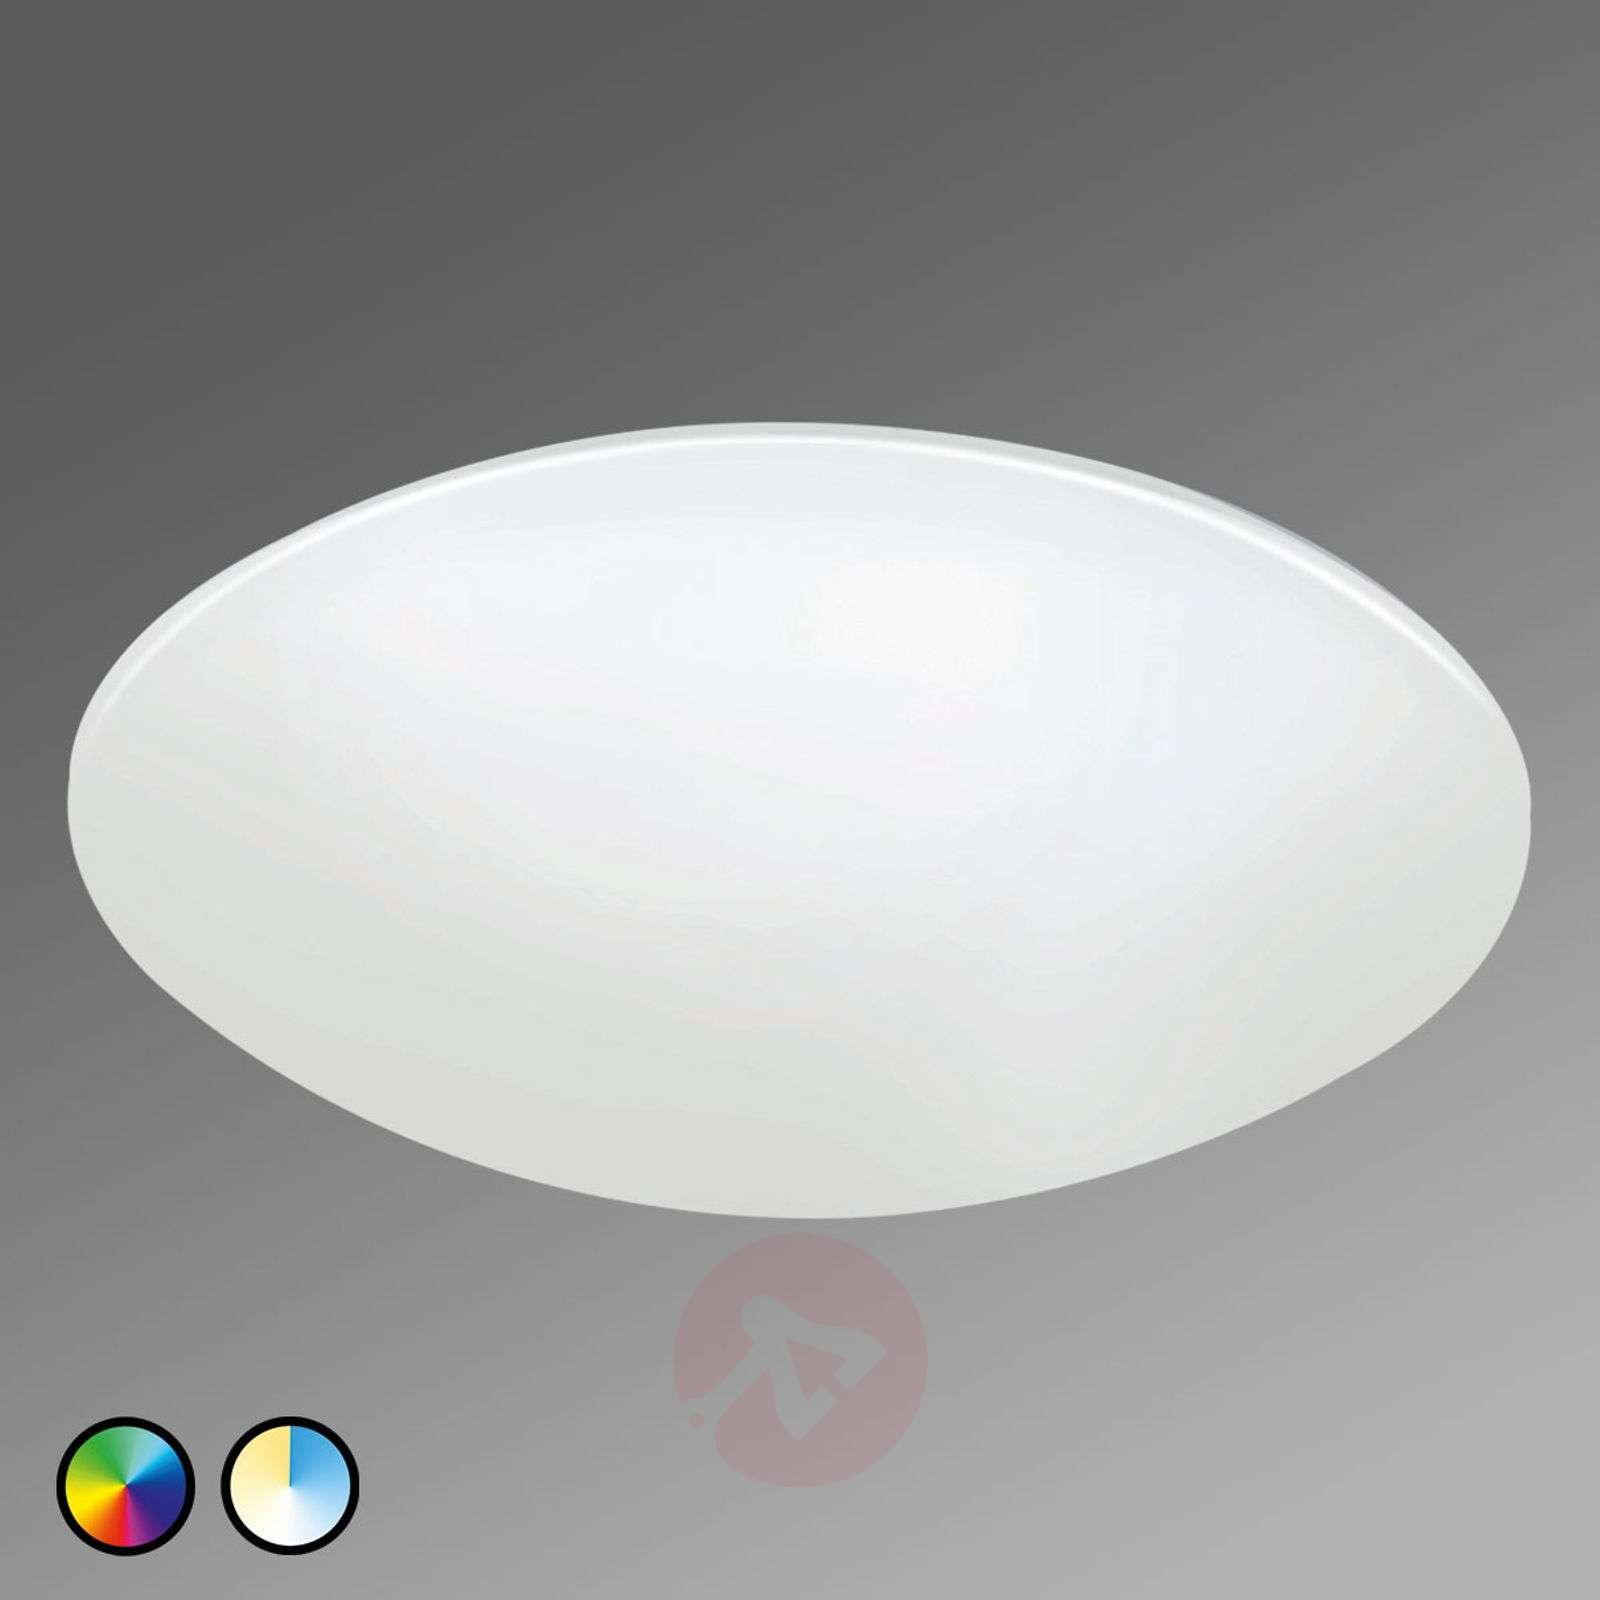 Plafoniera LED EGLO connect Giron-C bianca-3032069-01